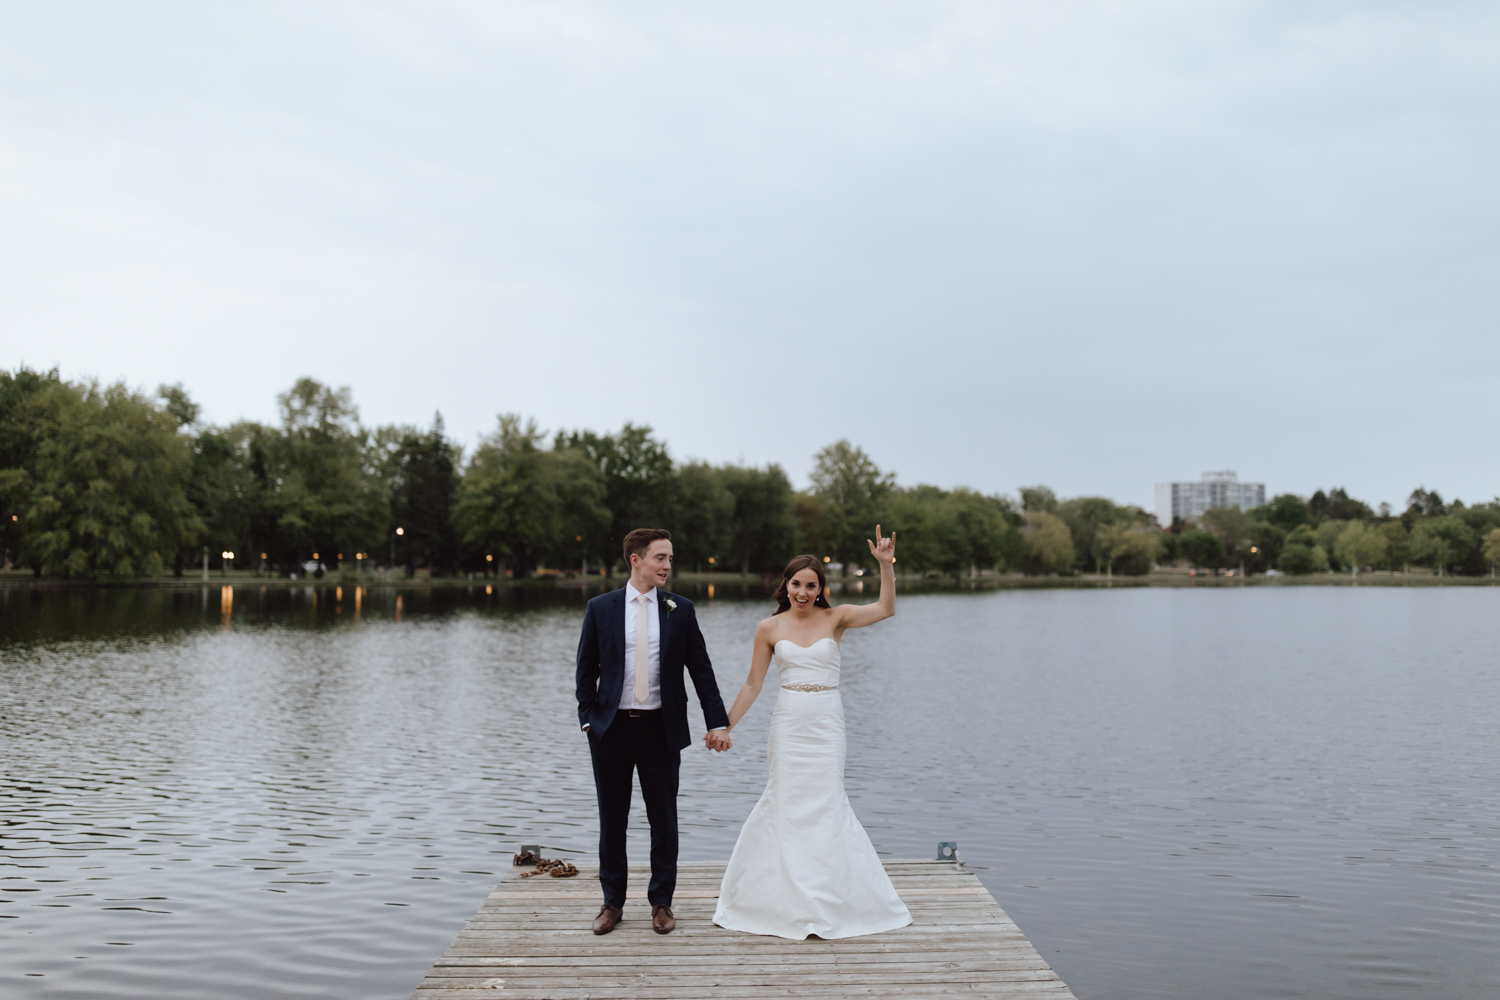 Lago Wedding Ottawa